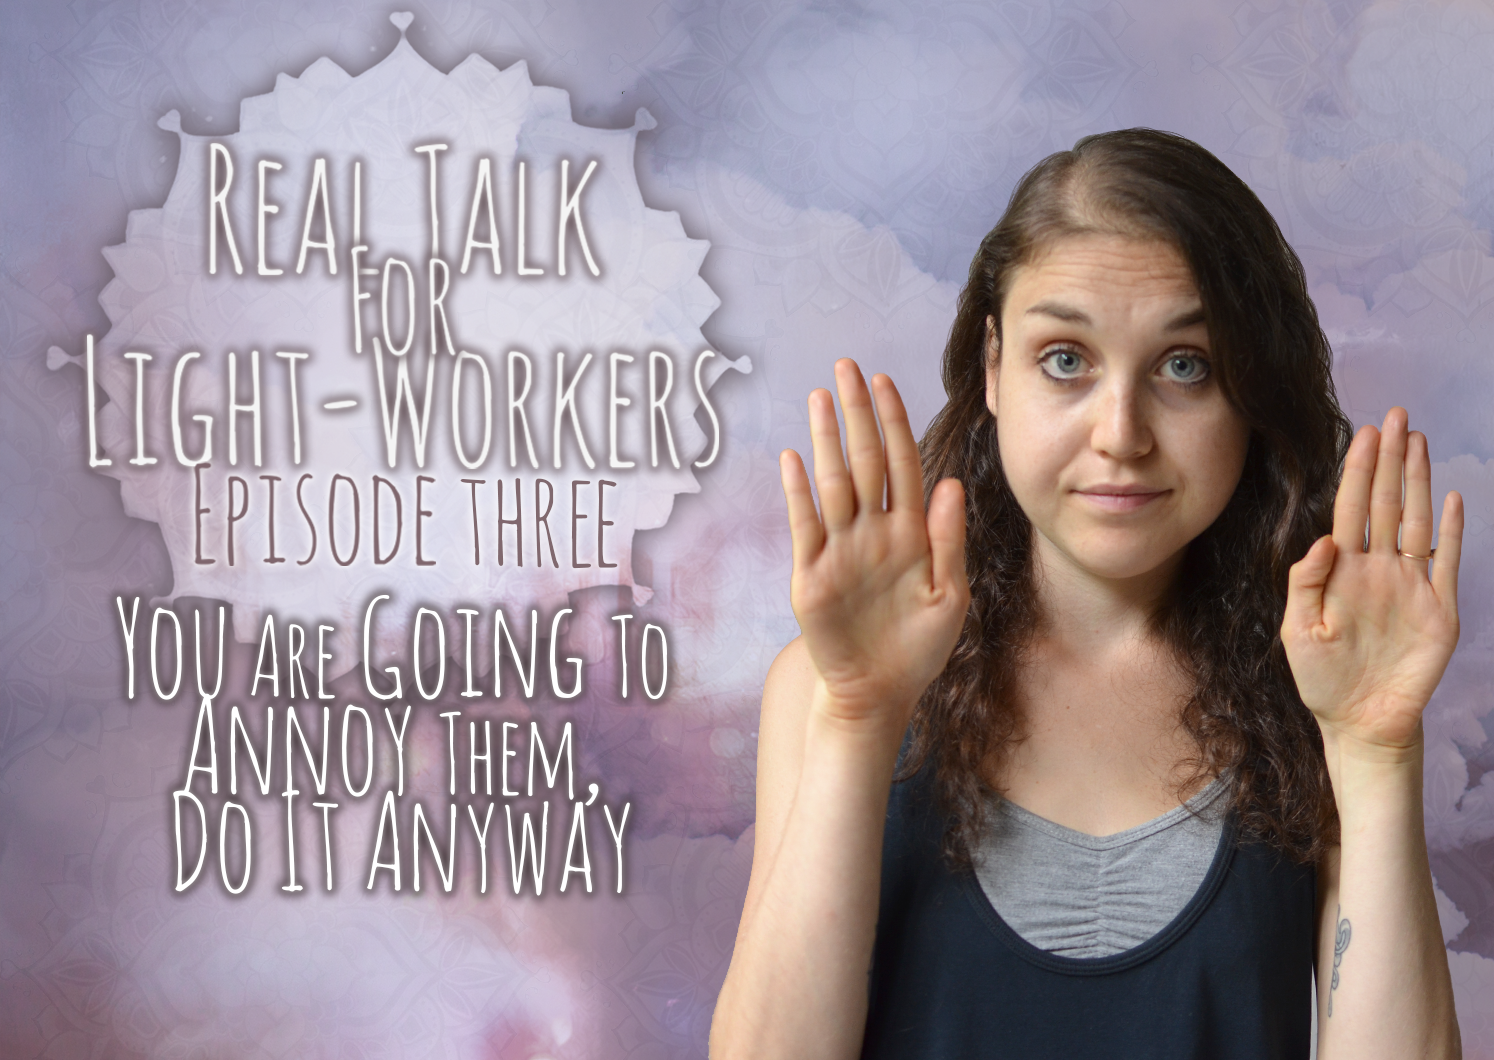 Real talk For Light Workers Episode Three – You Are Going To Irritate Them – Do It Anyway.